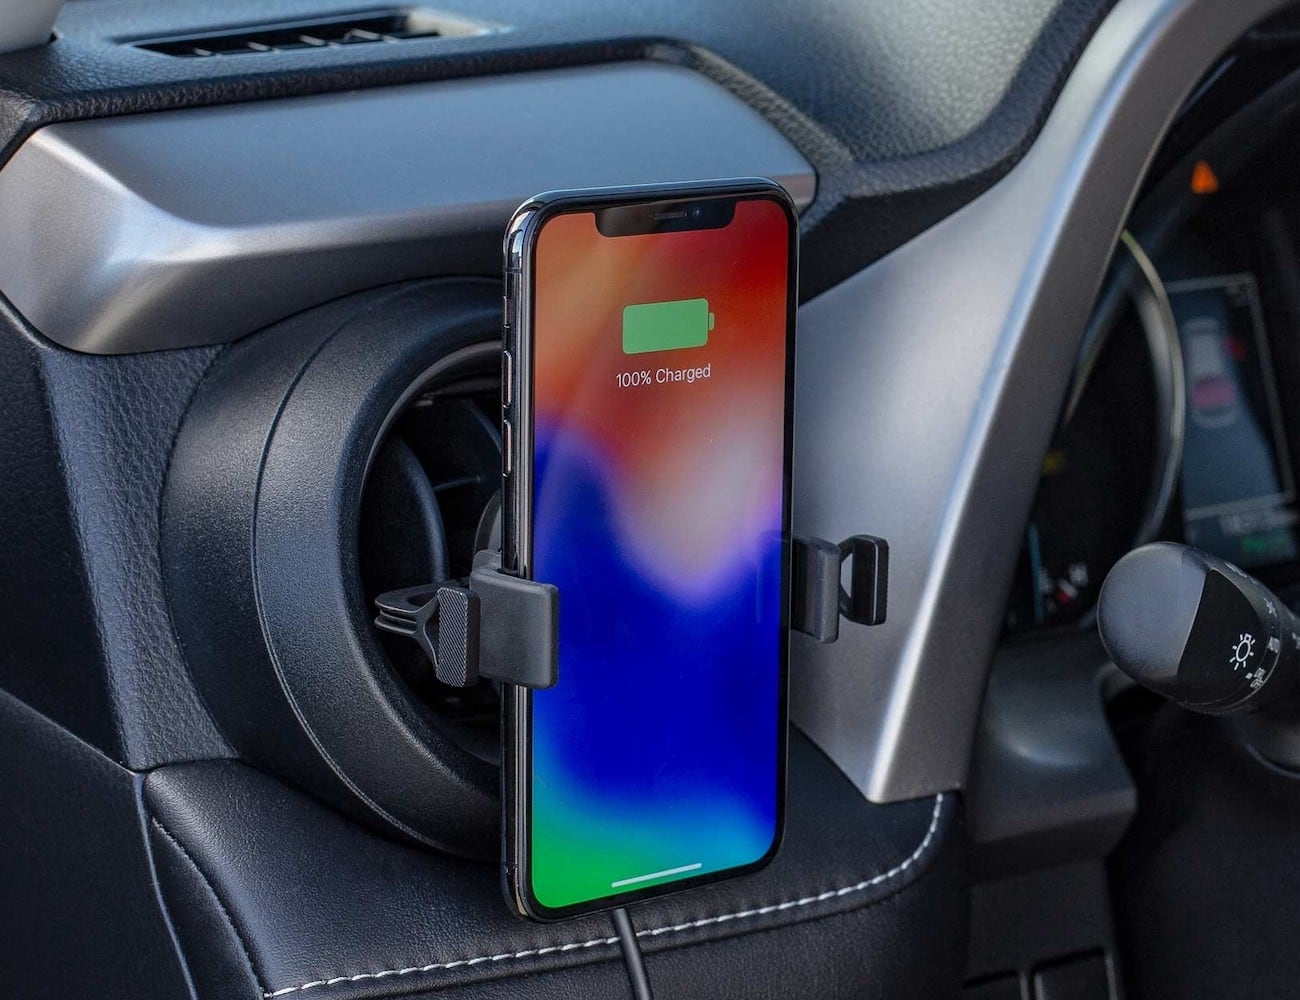 mophie charge stream vent mount Vehicle Phone Holder lets you power up in your car